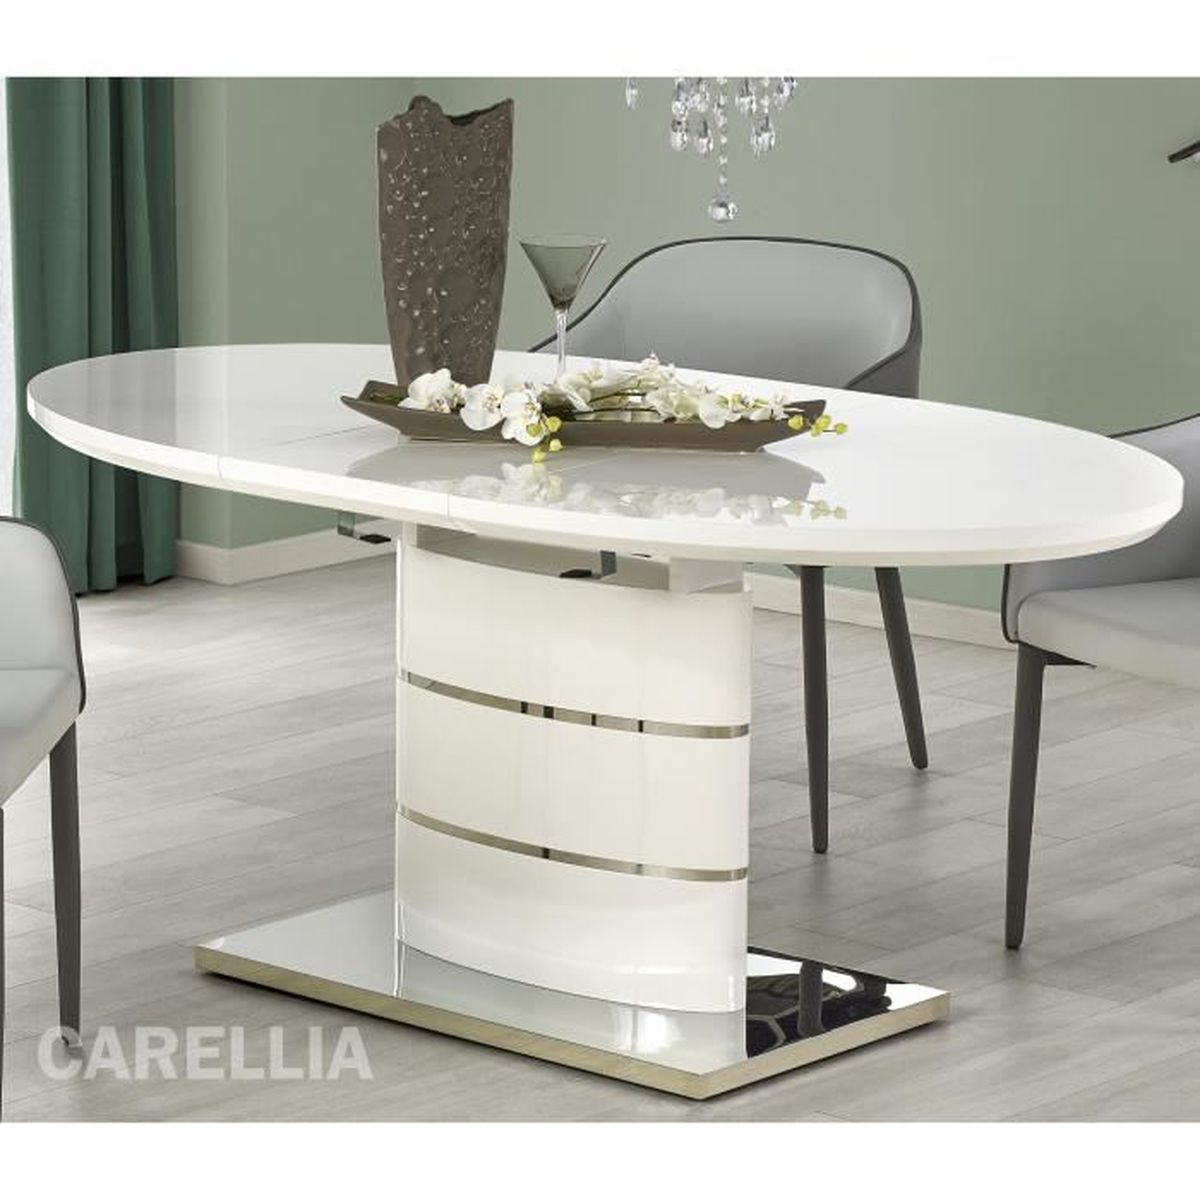 273bae90fa020f TABLE A MANGER OVALE EXTENSIBLE – L   140 ÷ 180 CM